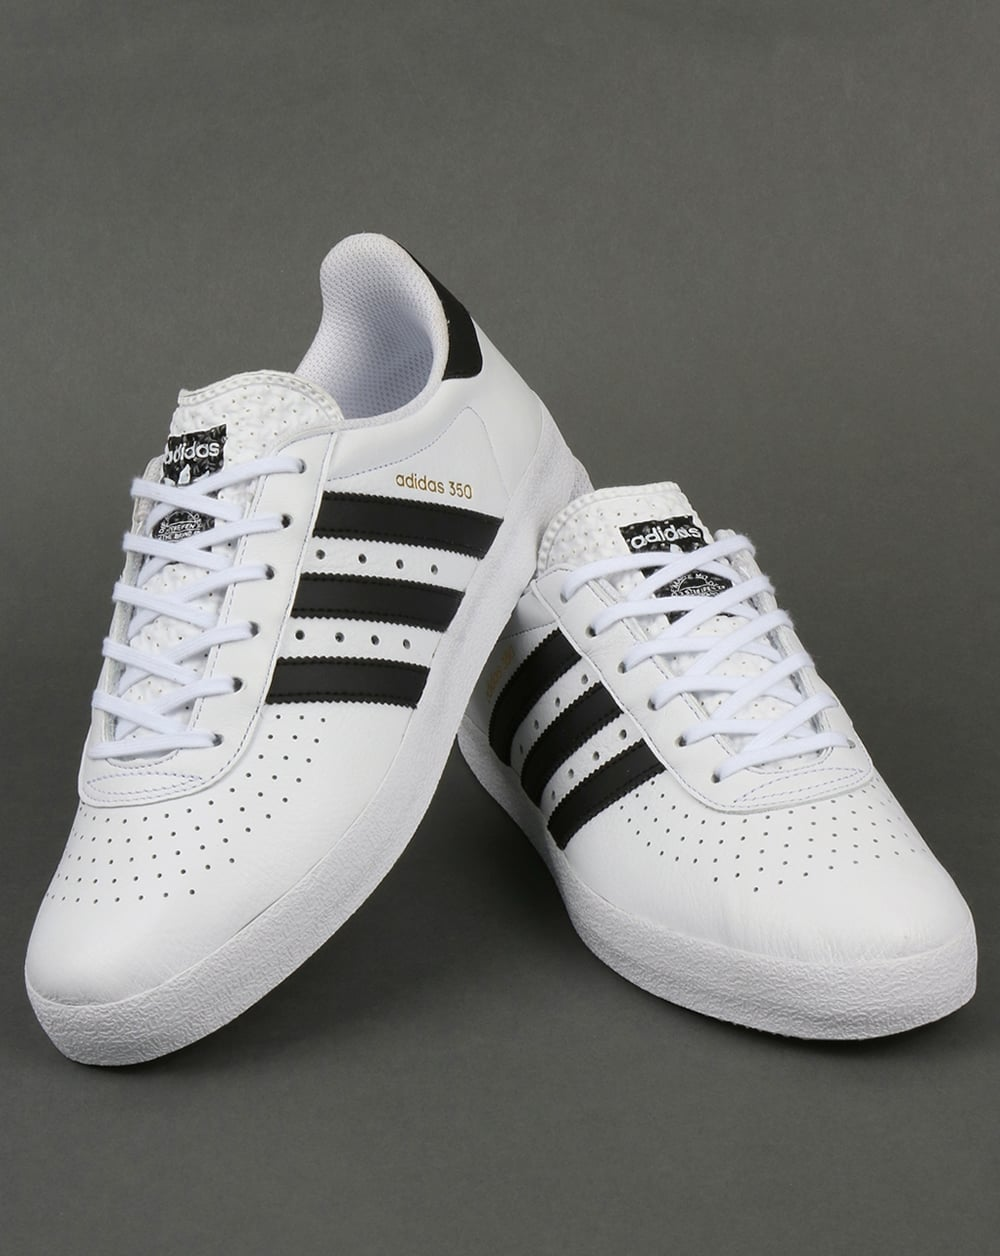 15901bccb39d Adidas Trainers Adidas 350 Trainers White Black